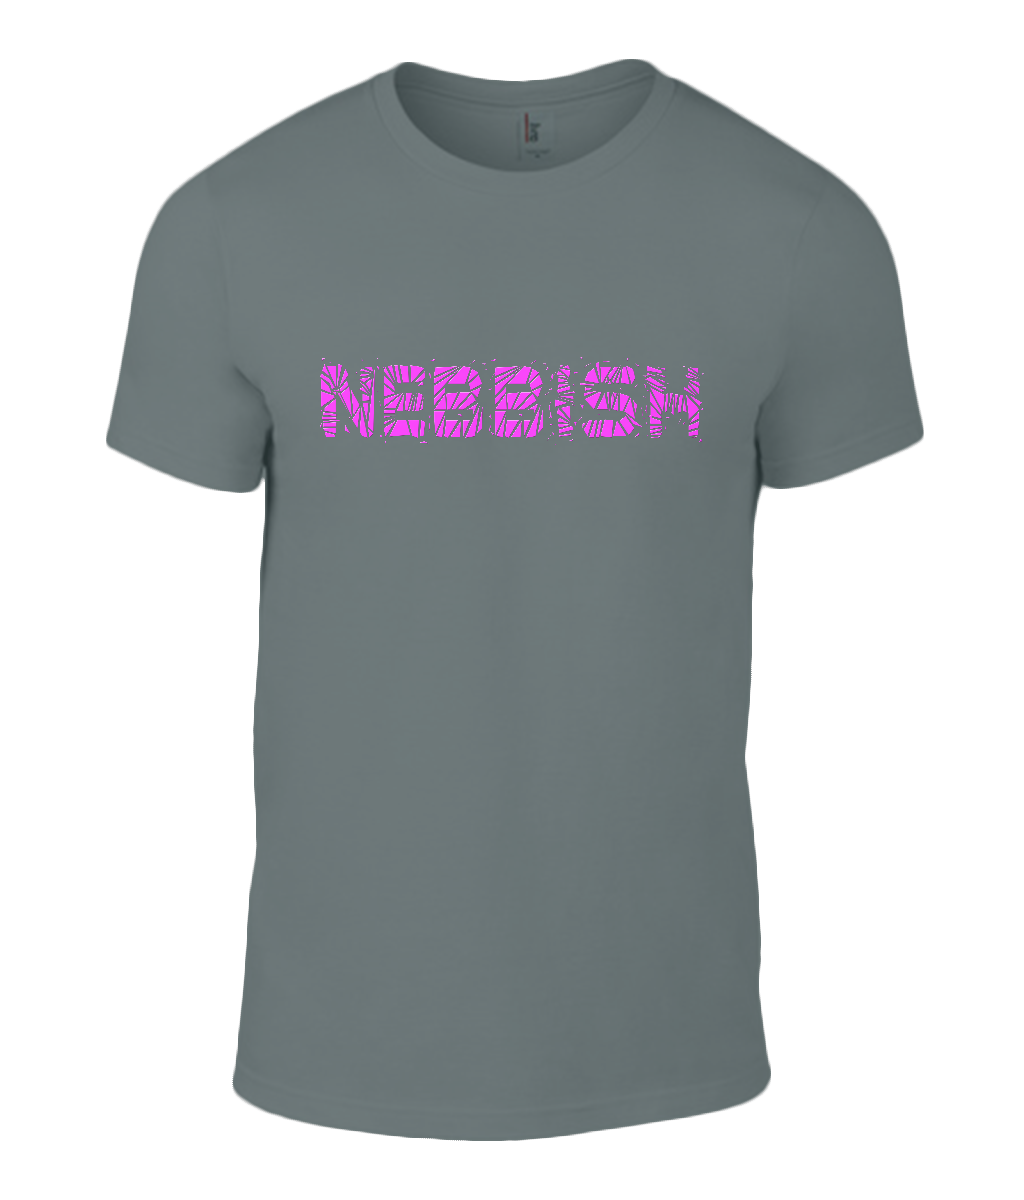 Round Neck T-Shirt - Nebbish - Lokshen Pudding UK - Grey